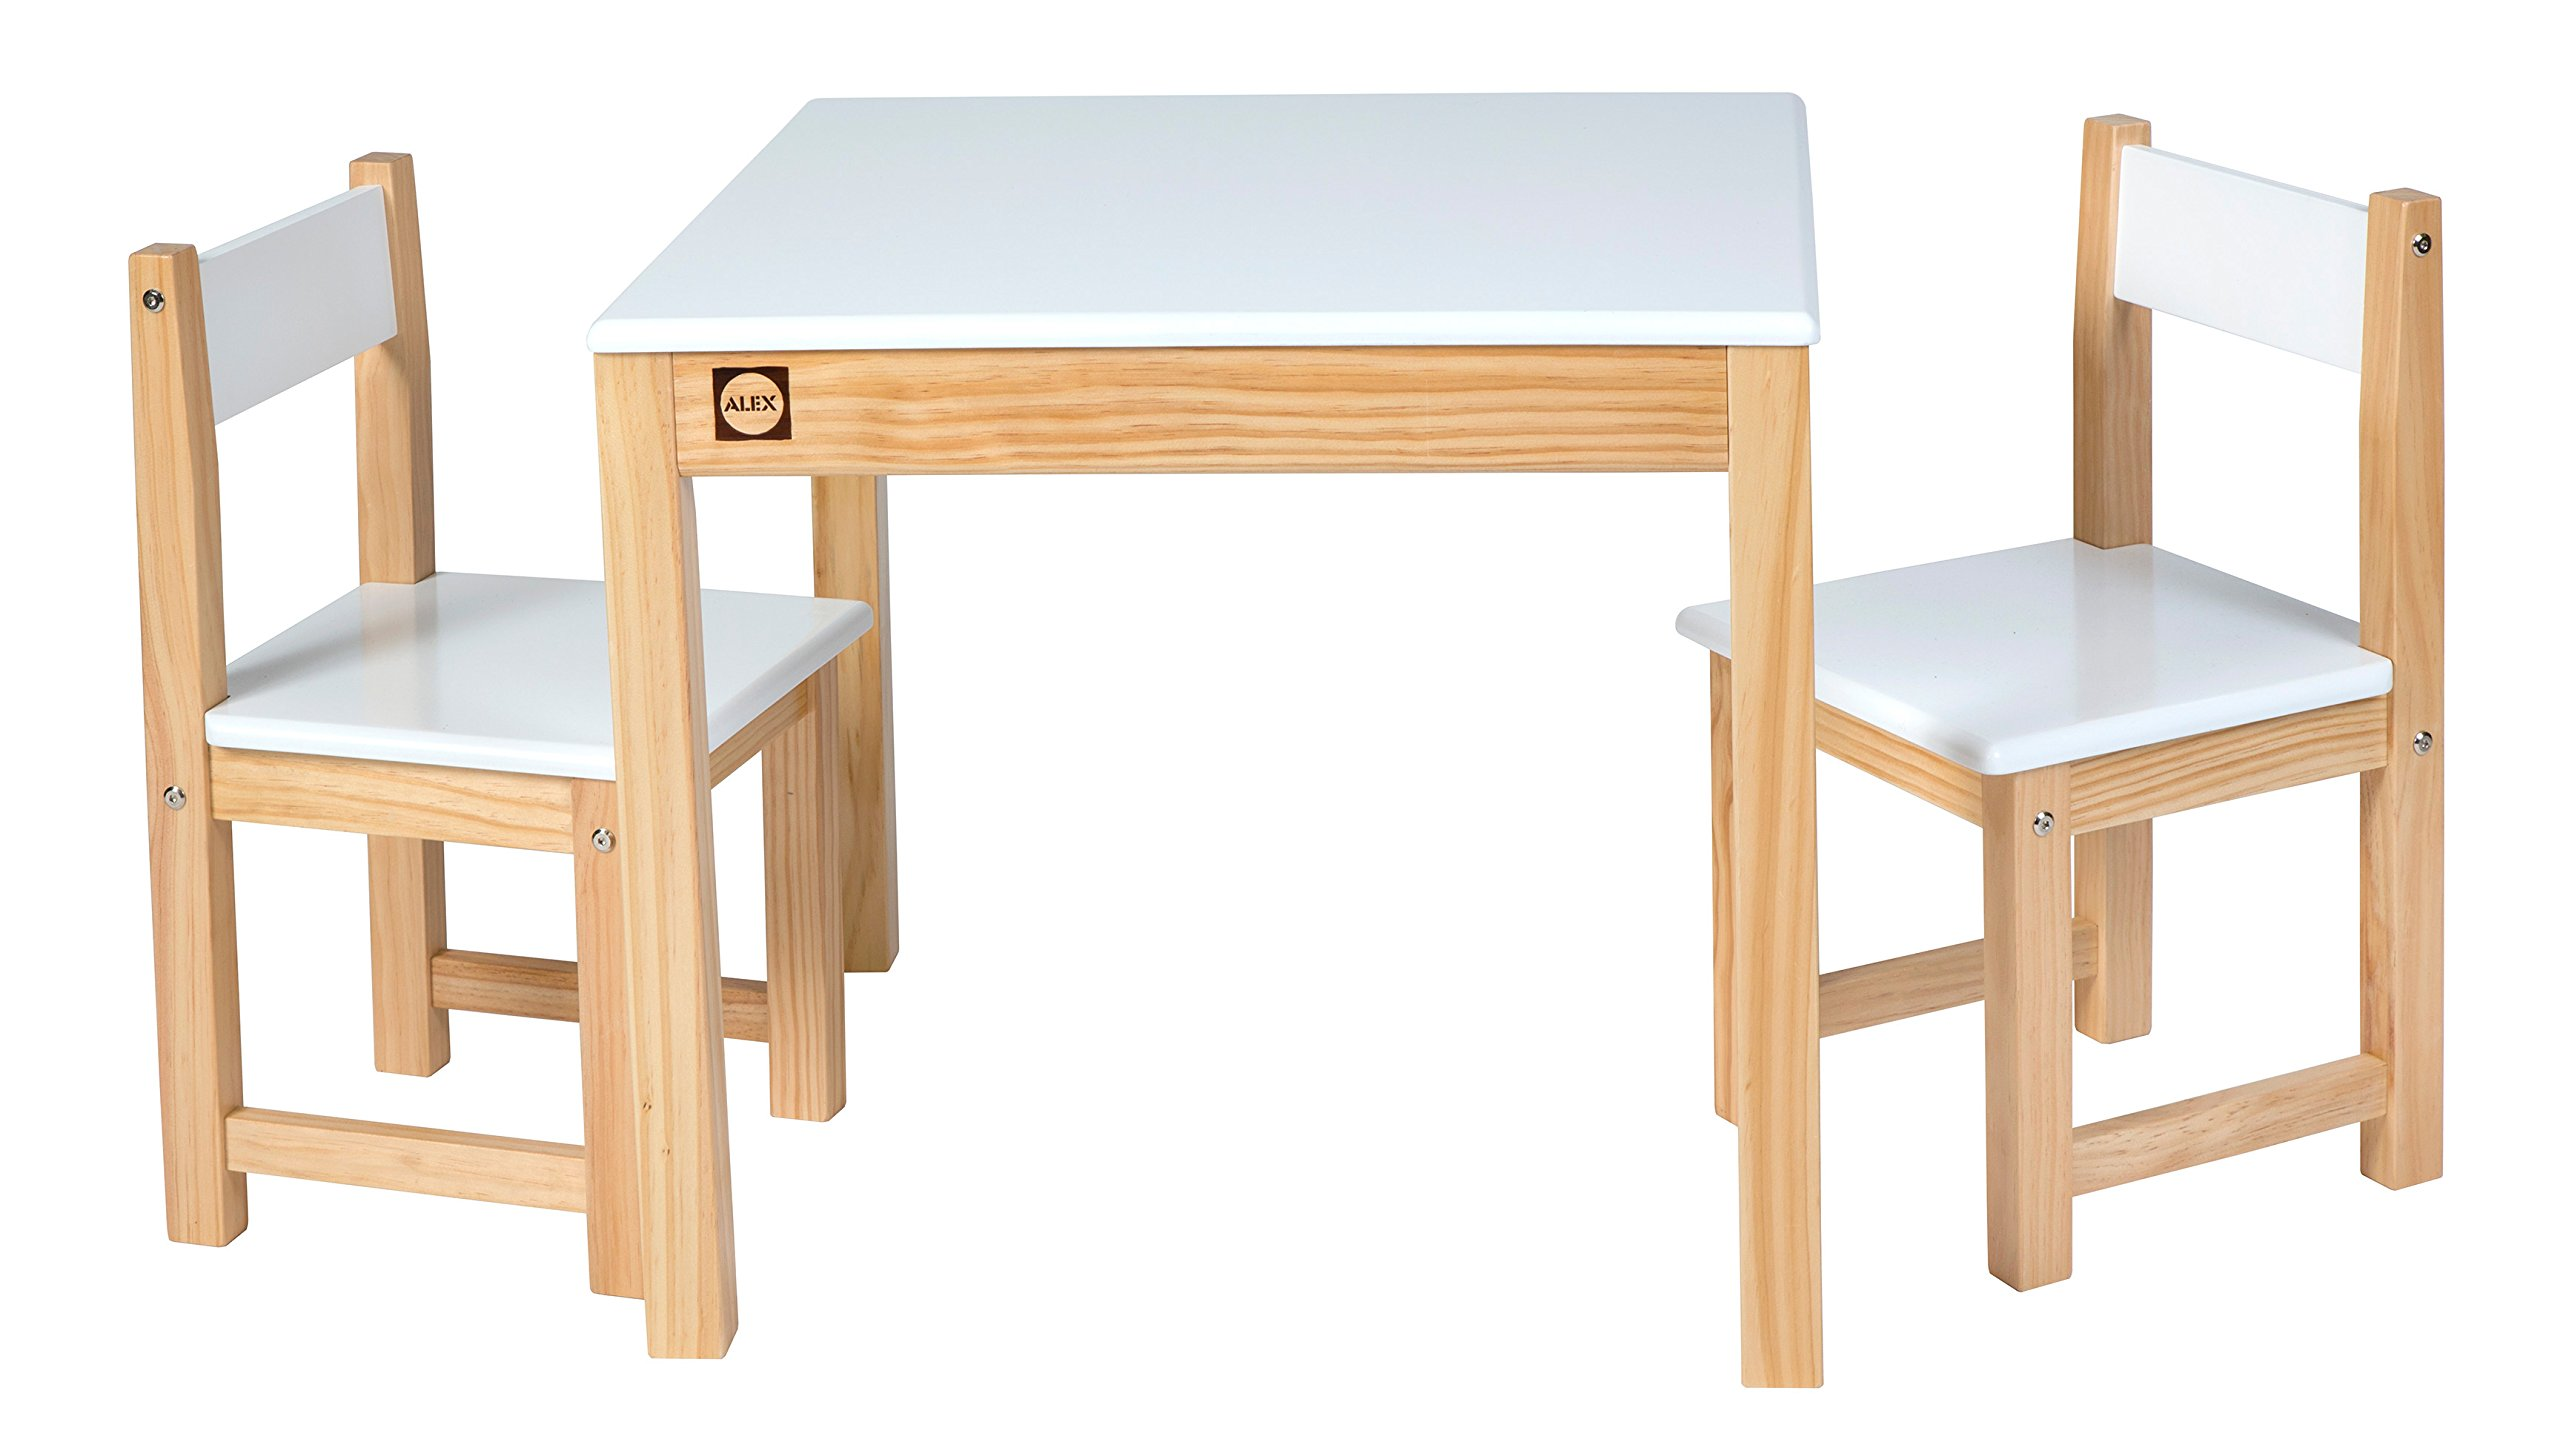 ALEX Toys Artist Studio Wooden Table and Chair Set White by ALEX Toys